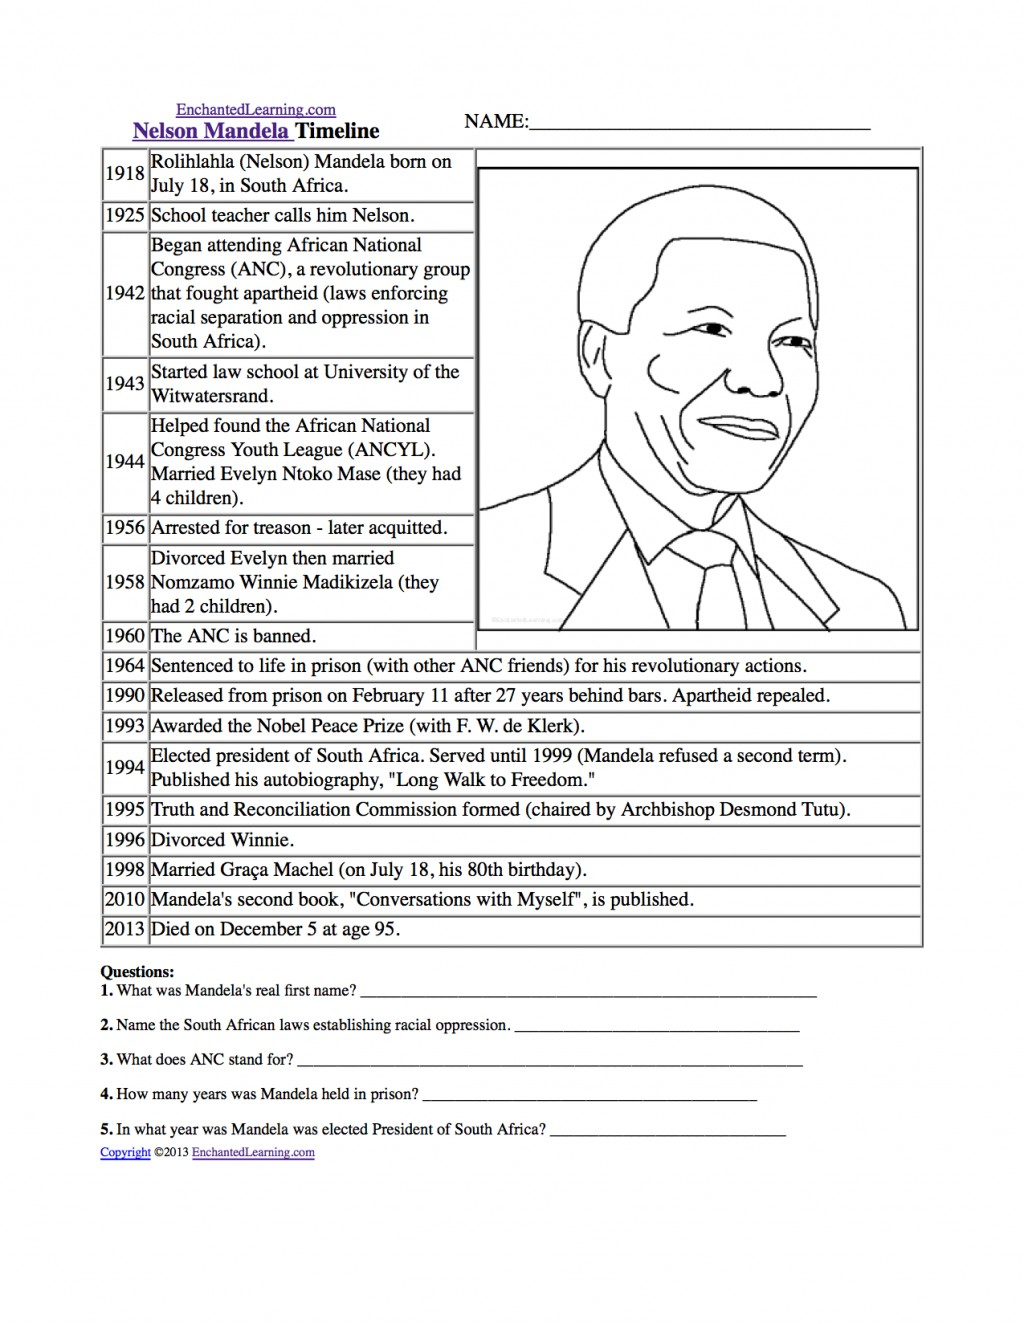 001 Essay Example Nelson Mandela Archaicawful Questions Research Paper Topics Large